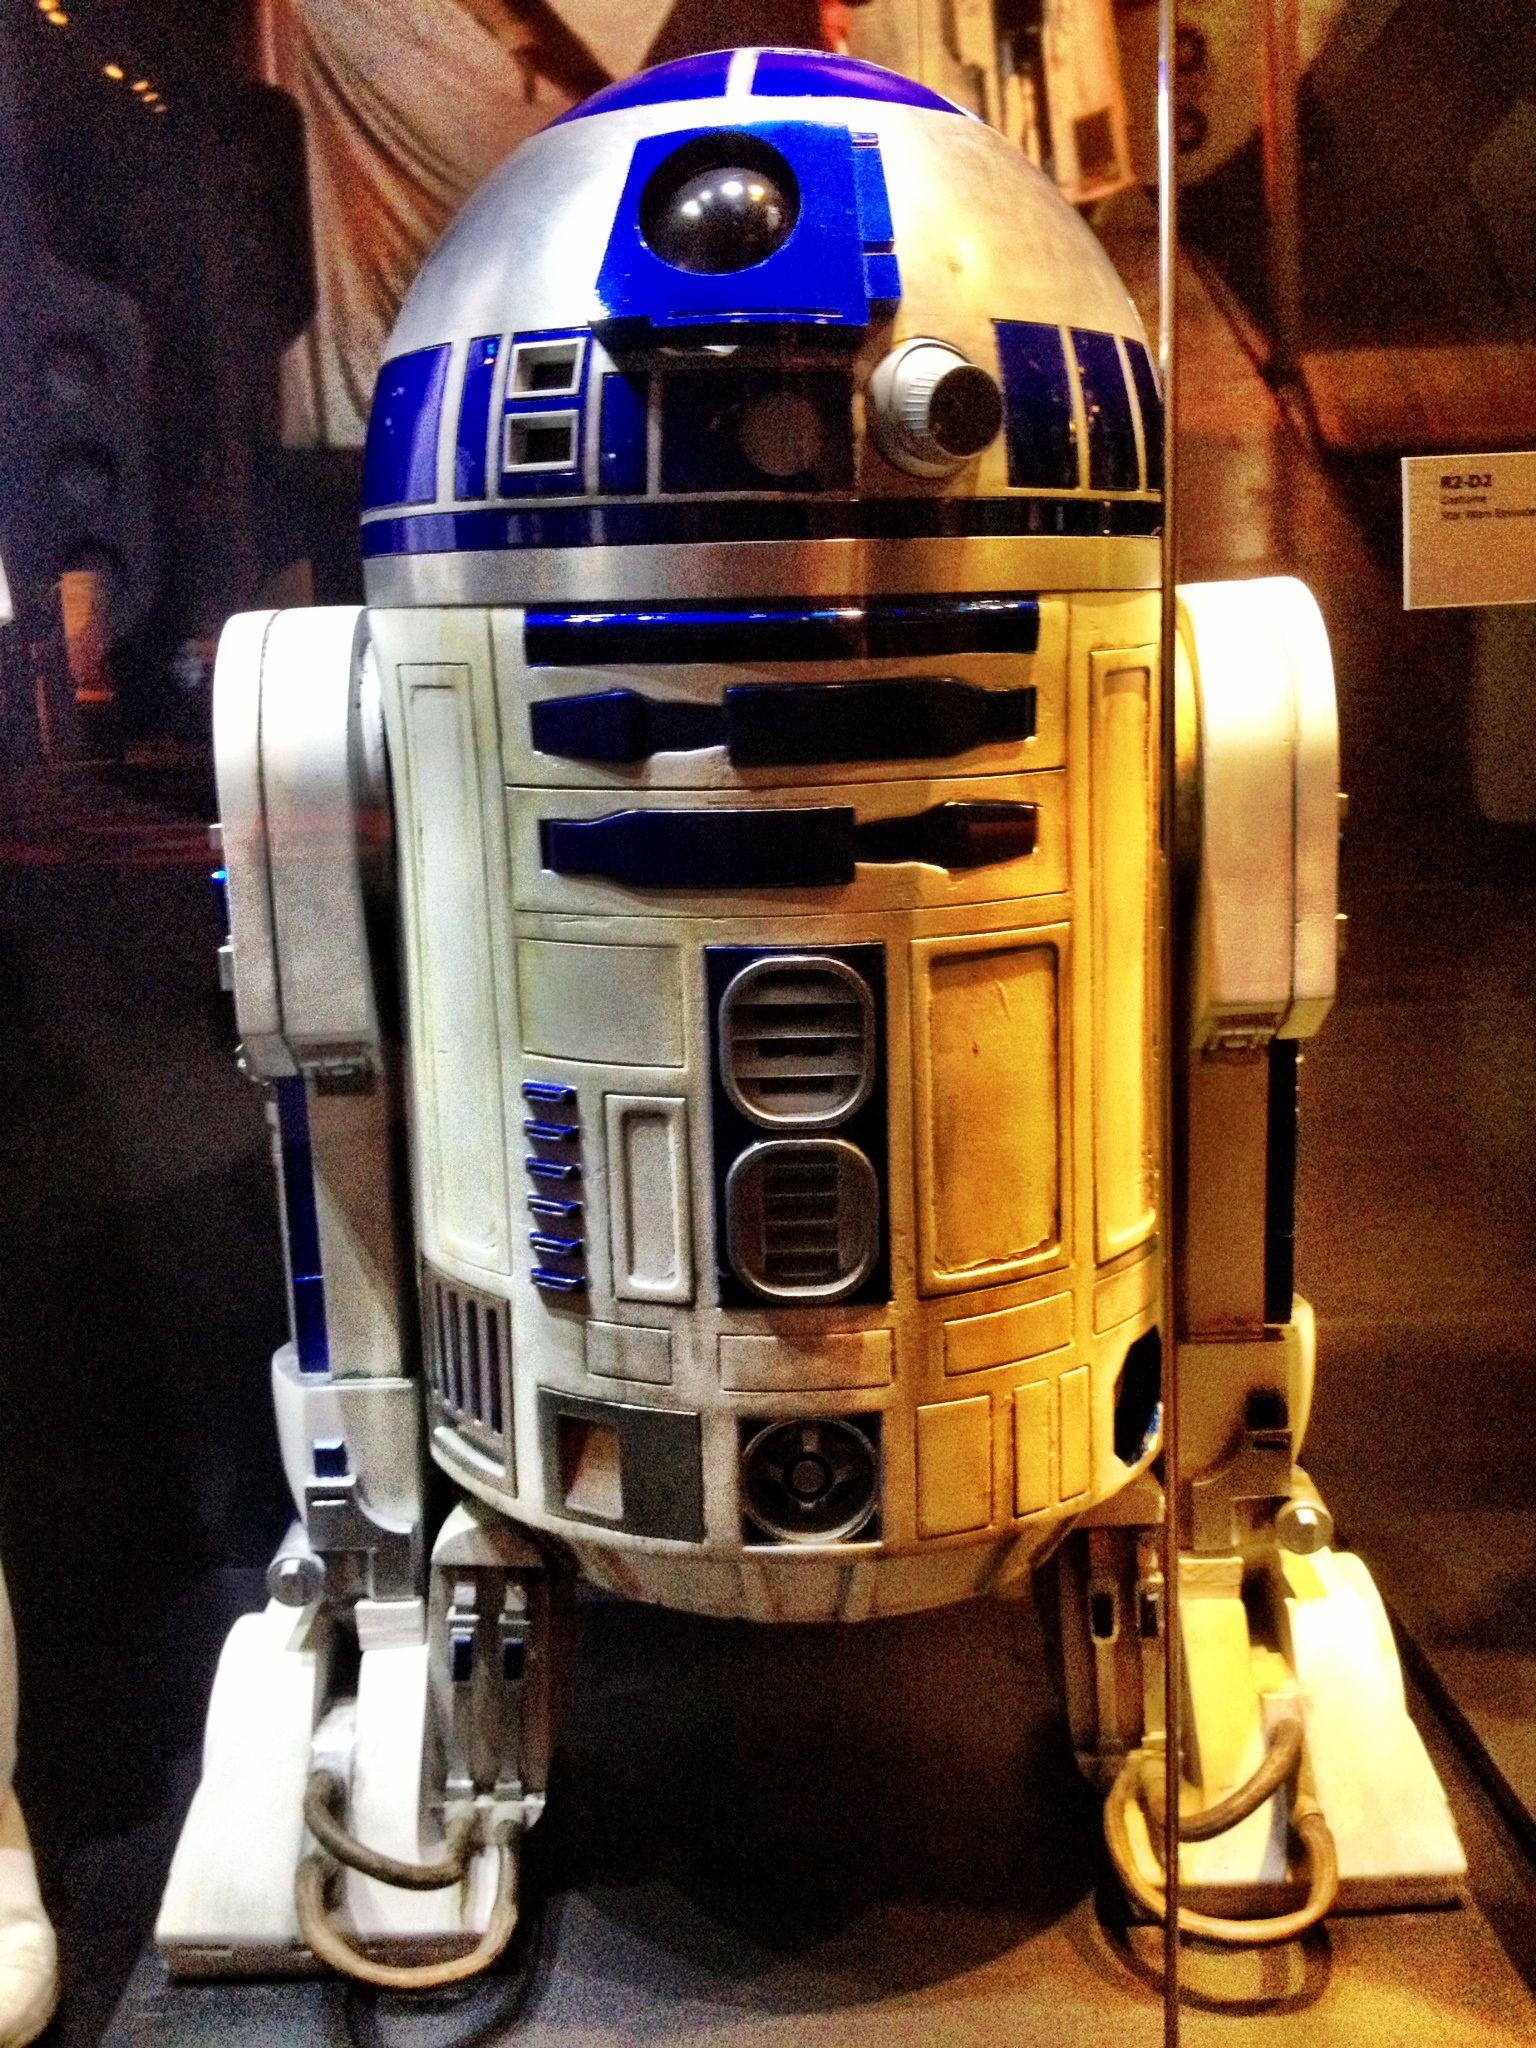 c4ed4ce46b422 Original R2d2 costume from episode 4 A New Hope